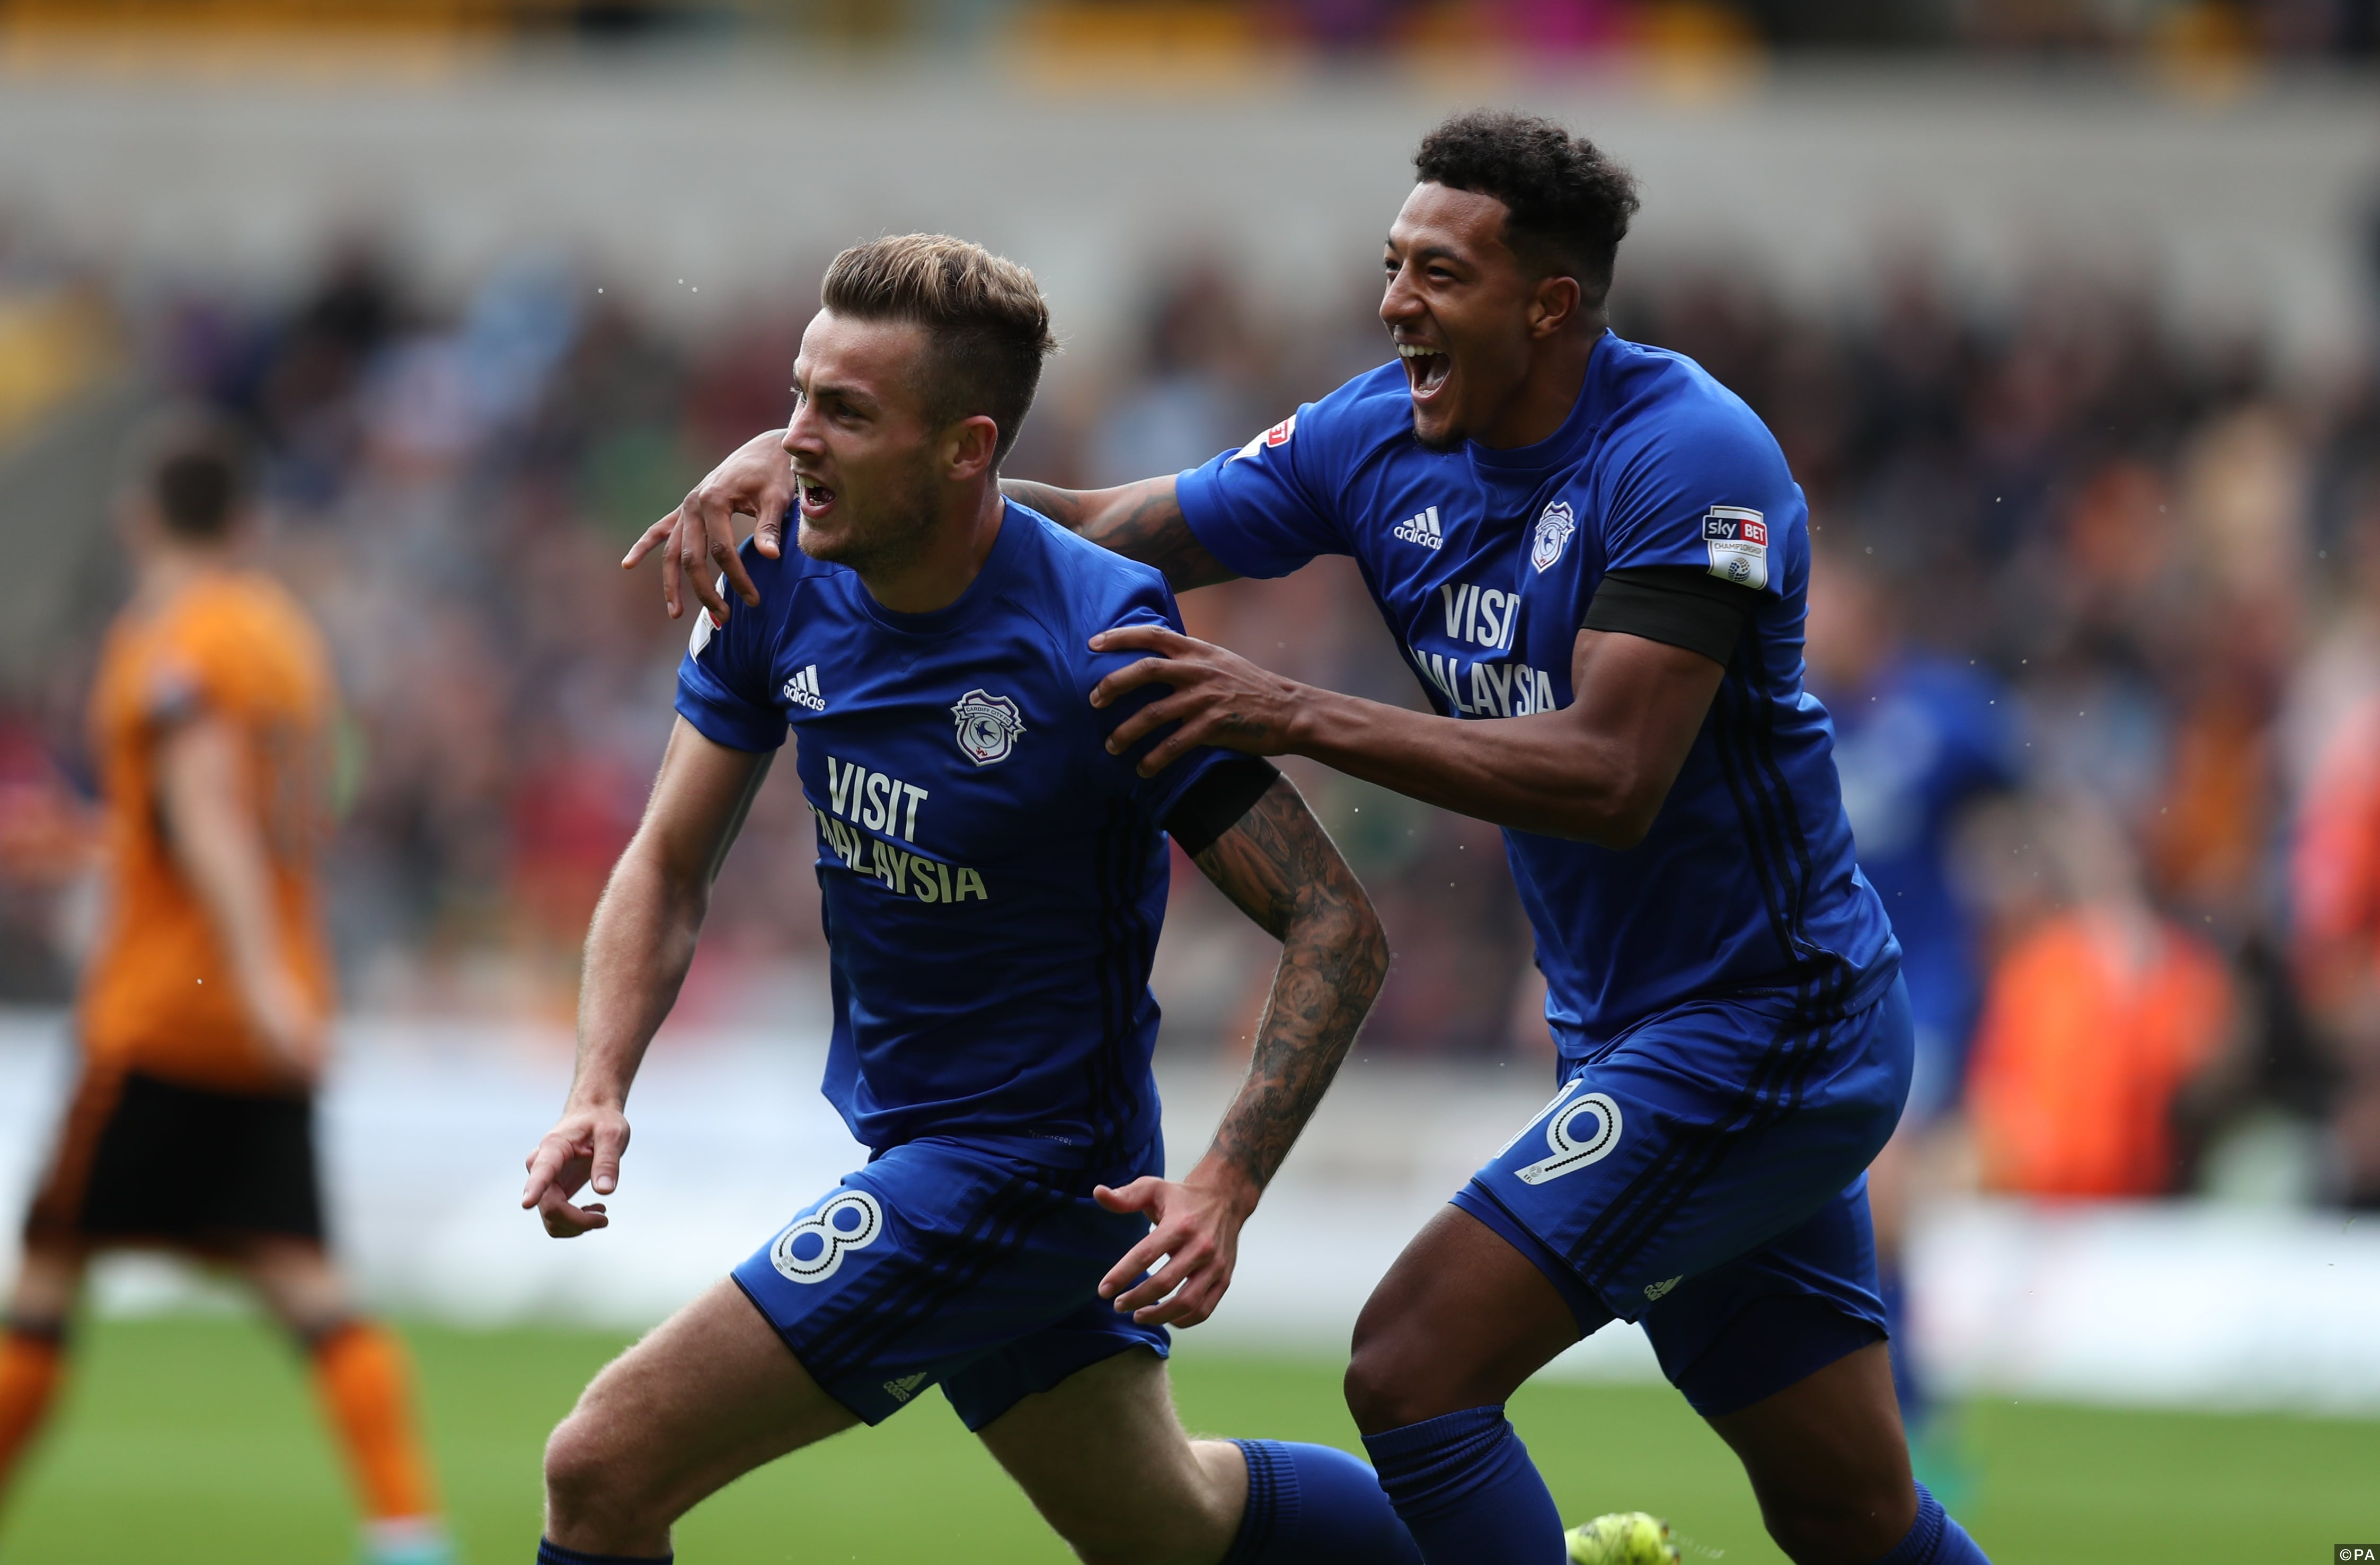 Cardiff vs Sunderland Predictions, Betting Tips and Match Previews